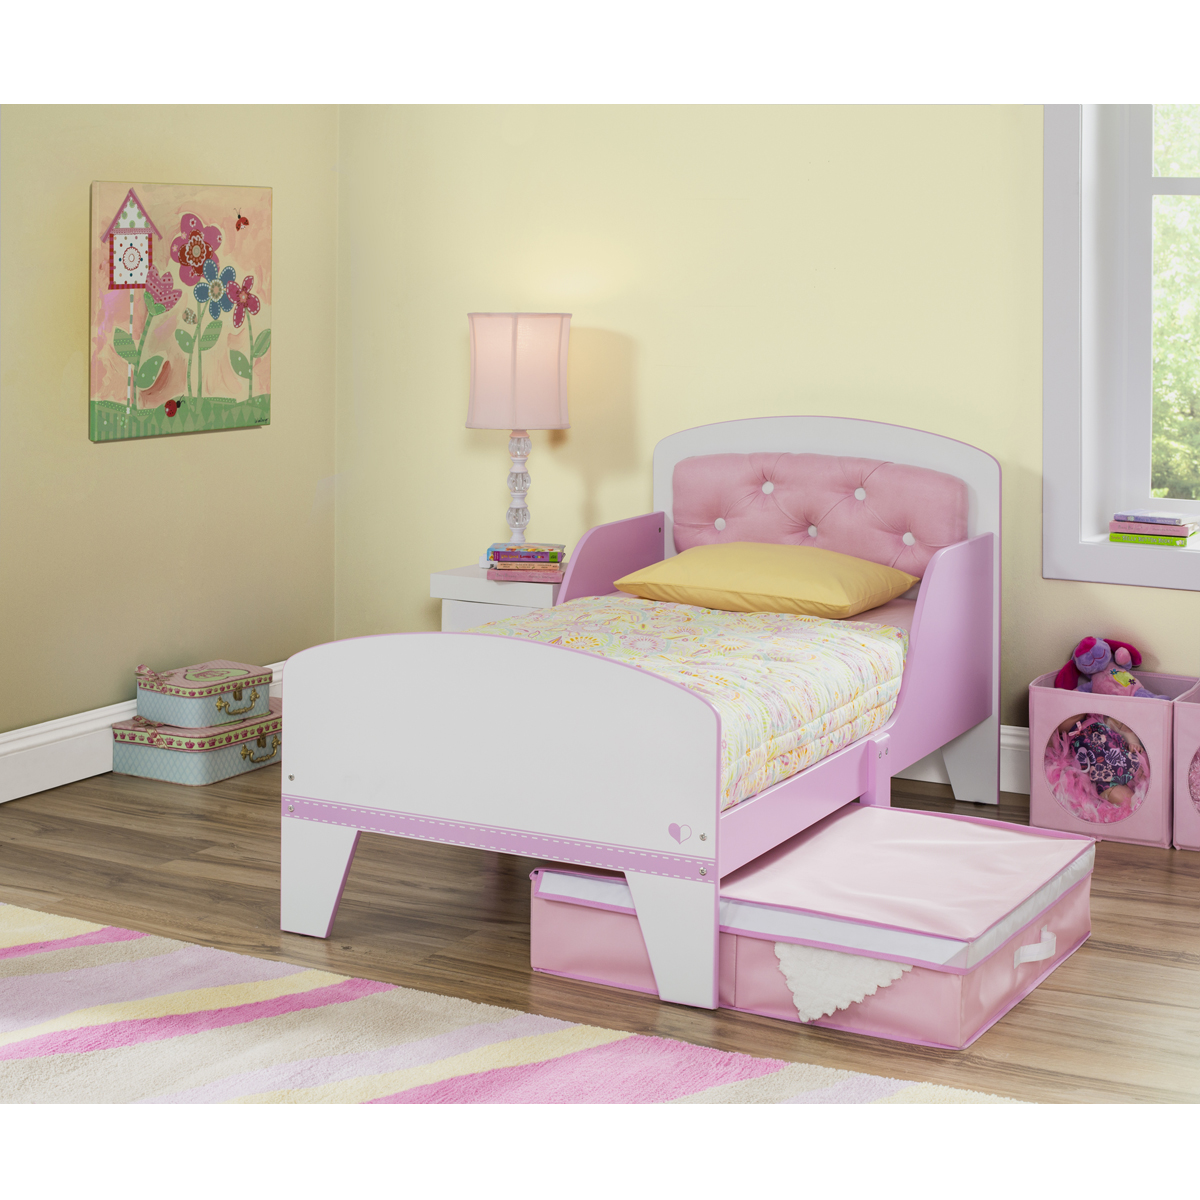 Kids Headboards Delta Children Jack Jill Toddler Bed With Upholstered Headboard In Pink White